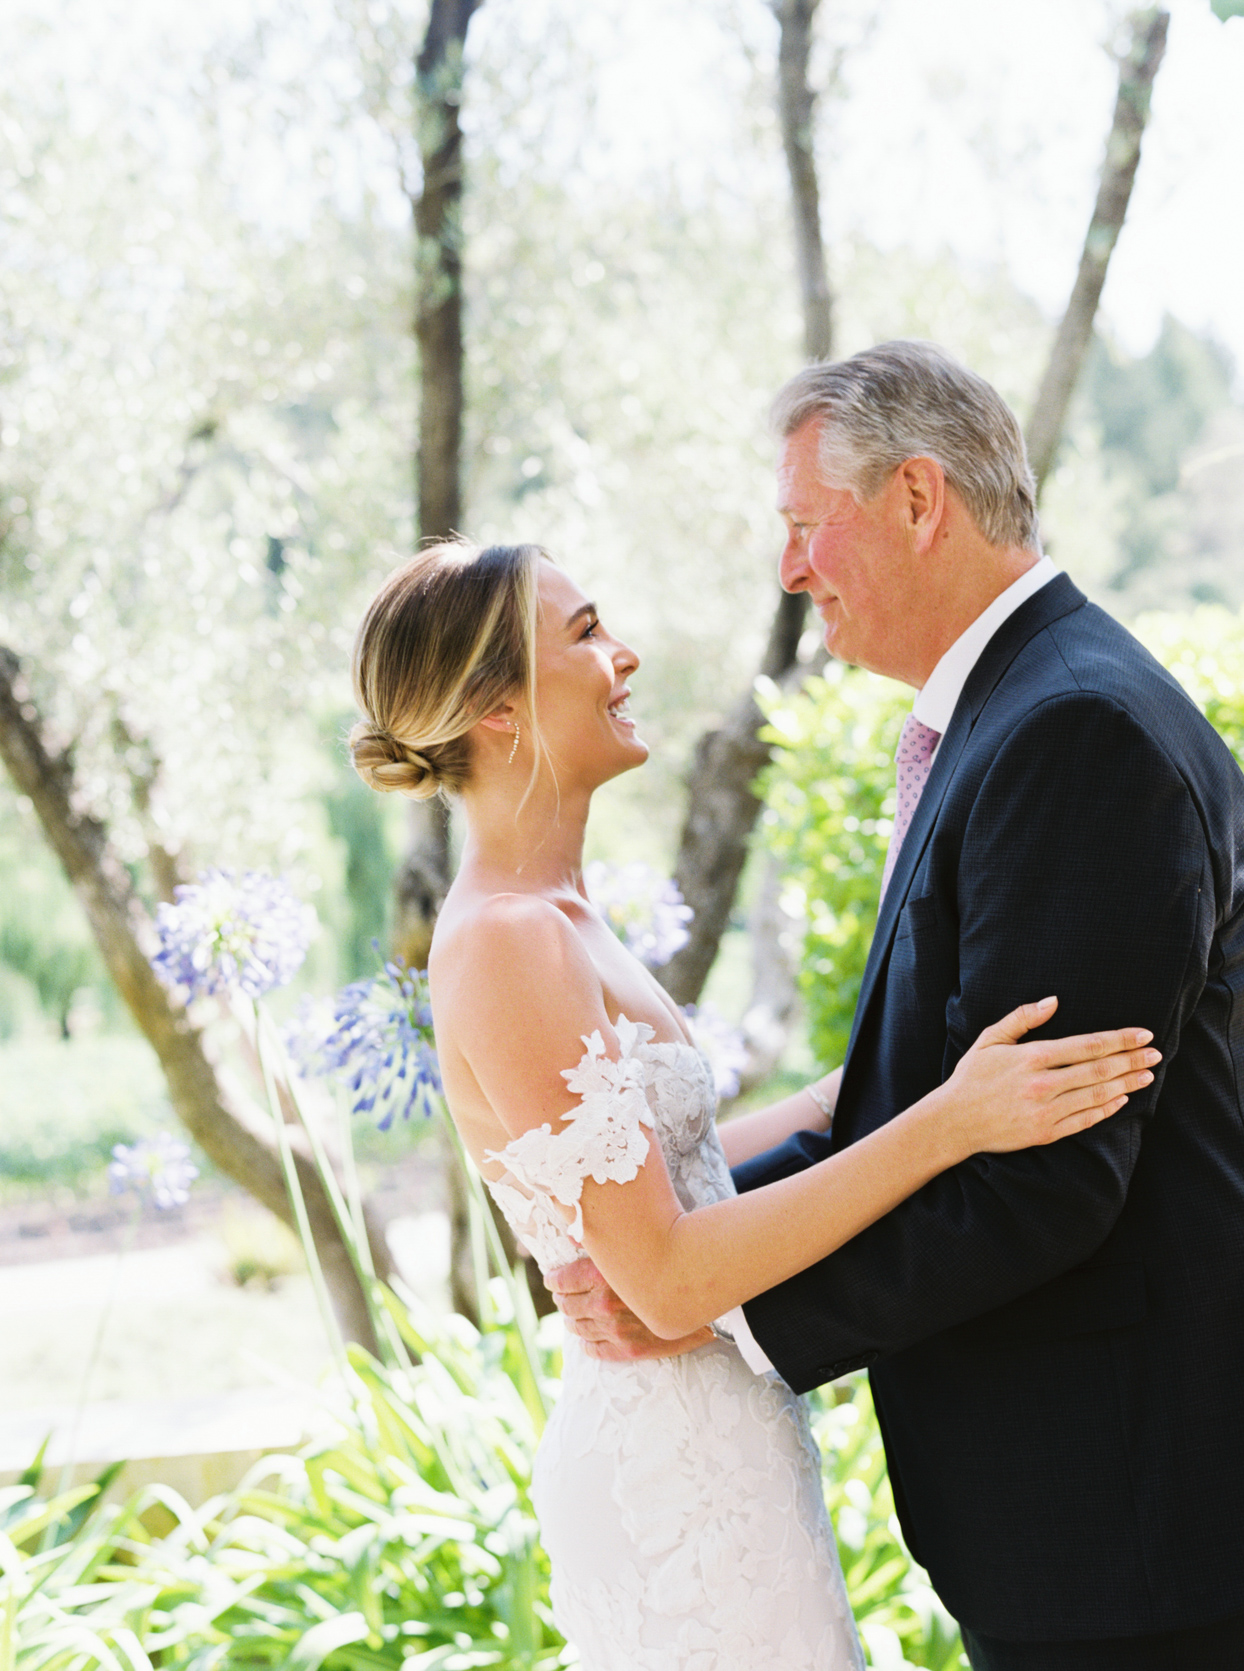 father and bride embracing before wedding